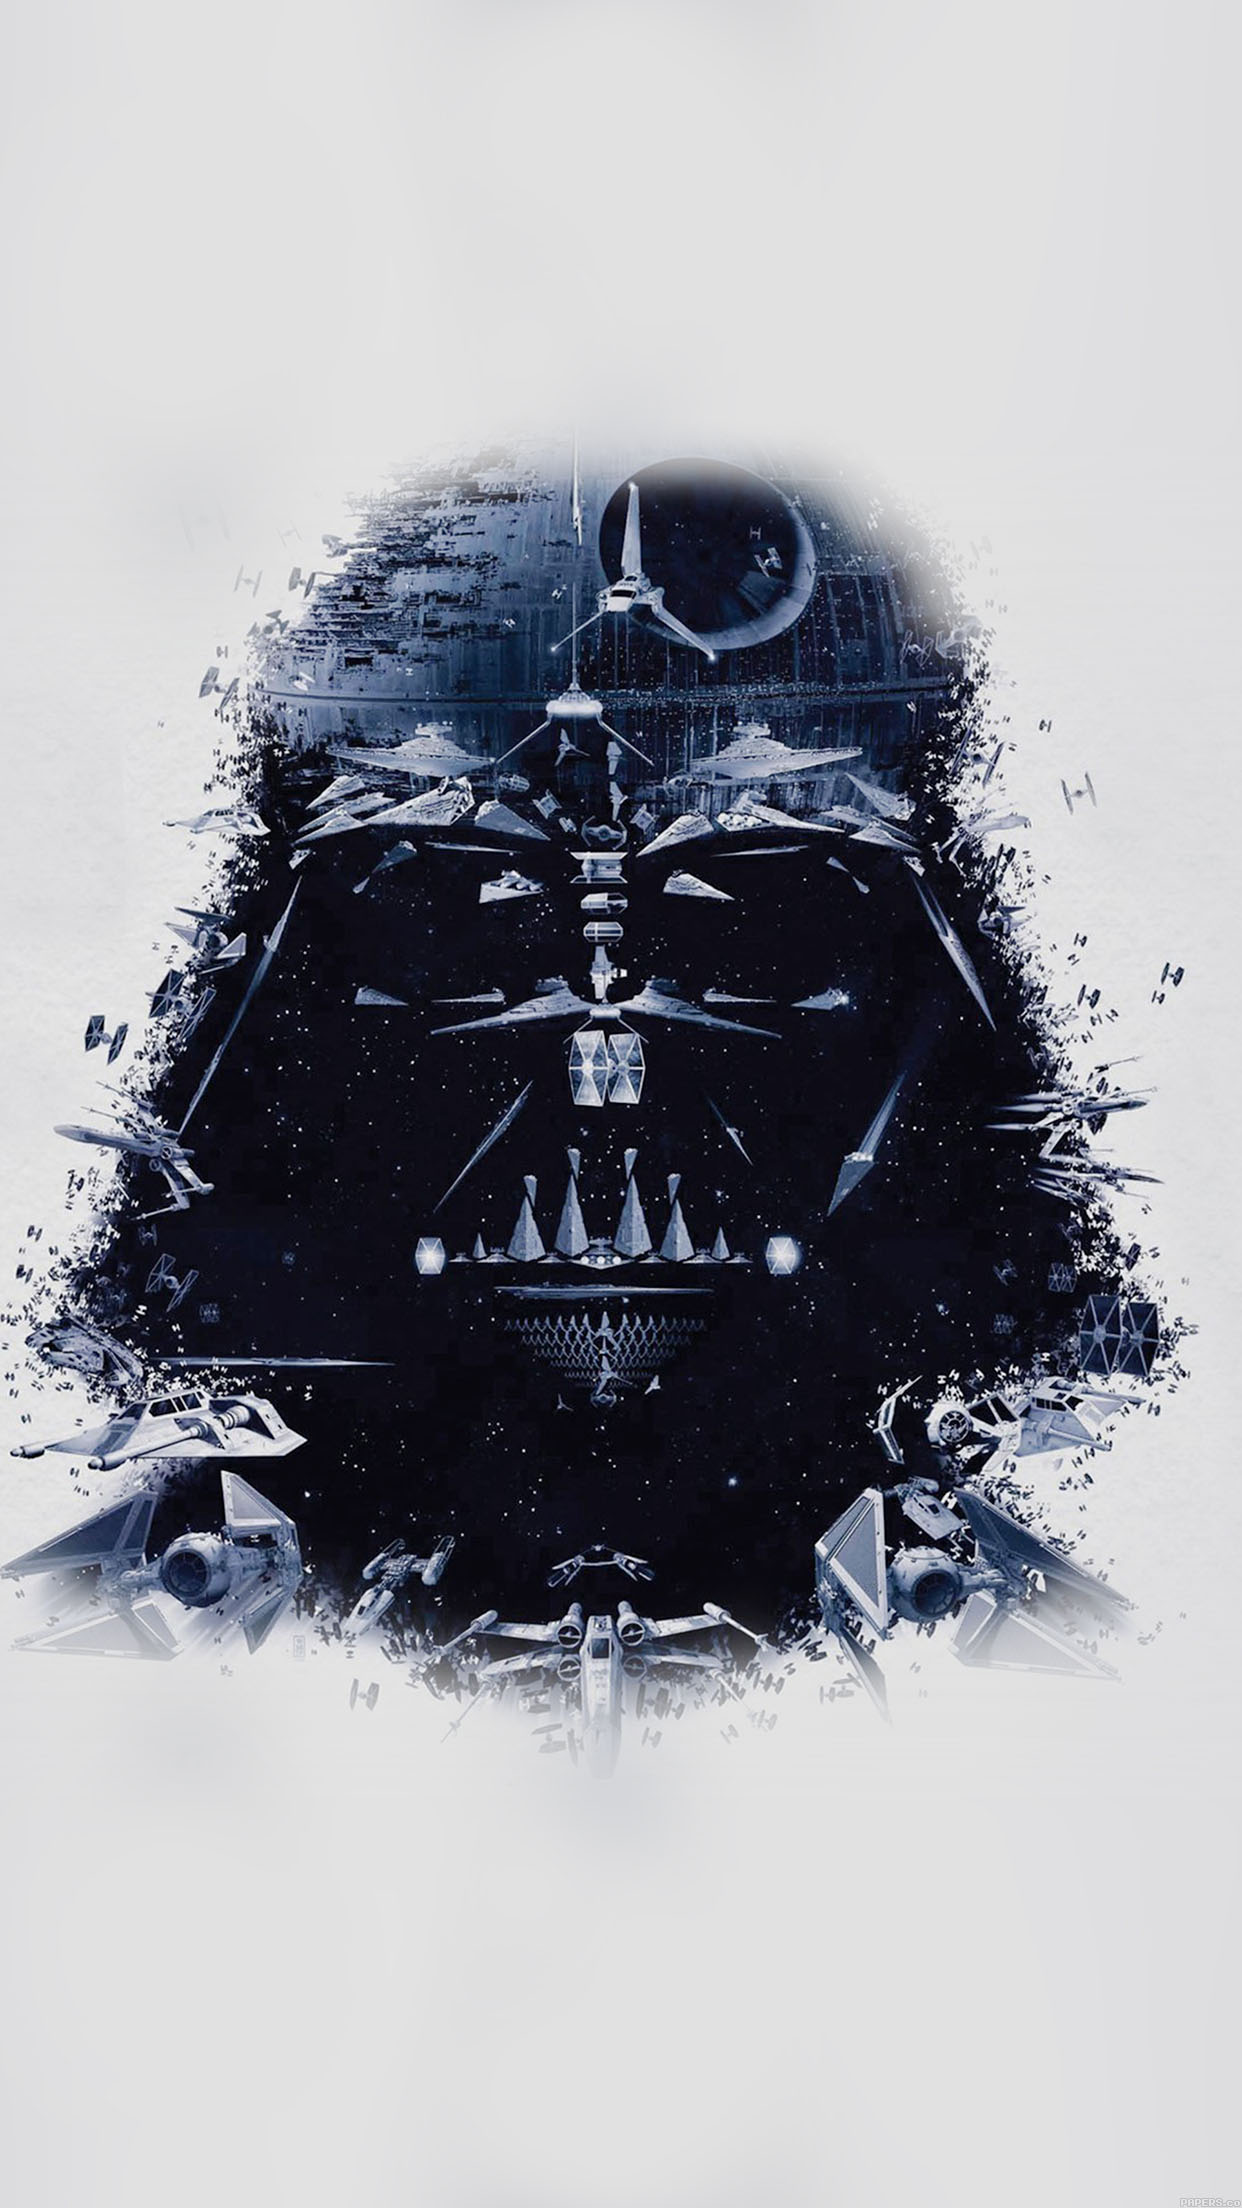 wallpaper darth vader art star wars illust 34 iphone6 plus wallpaper